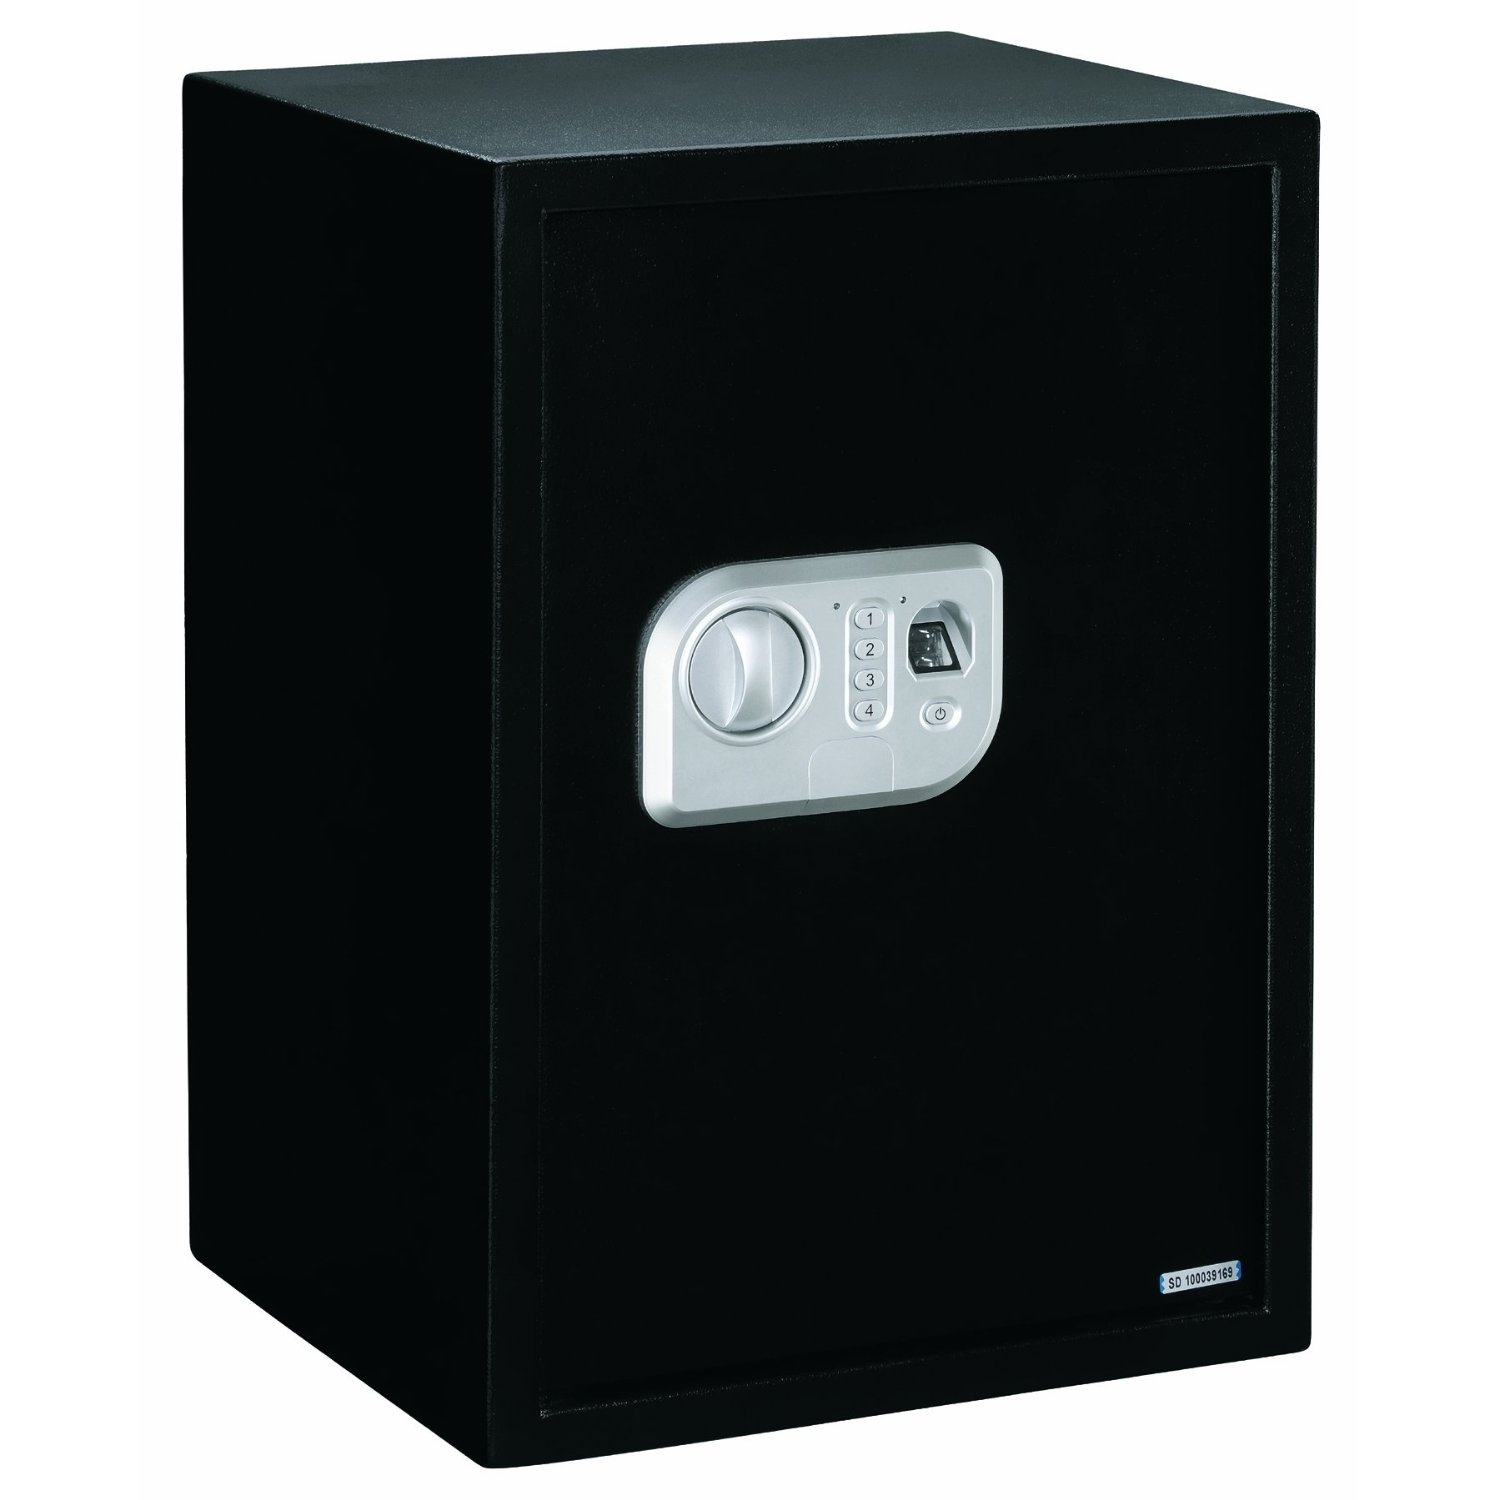 Large Personal Gun Safe with Fingerprint Open Lock, SOBELPS13097 :  This Large Personal Gun Safe with Fingerprint Open Lock is a personal safe with biometric lock can be programmed to accept up to 32 different fingerprints and provides greater security and quicker access to the safe's contents. Great for storing valuables, pistols, and ammo at home or on the road, this safe features a solid steel, pry-resistant door with concealed hinges and 2 steel live action locking bolts. It offers pre-drilled holes for mounting to floor or shelf, and fastening hardware is included. Other features include two removable steel shelves with egg crate foam padding (also found on the bottom), an electronic lock, and hidden trouble key. Exterior has a black epoxy paint finish.